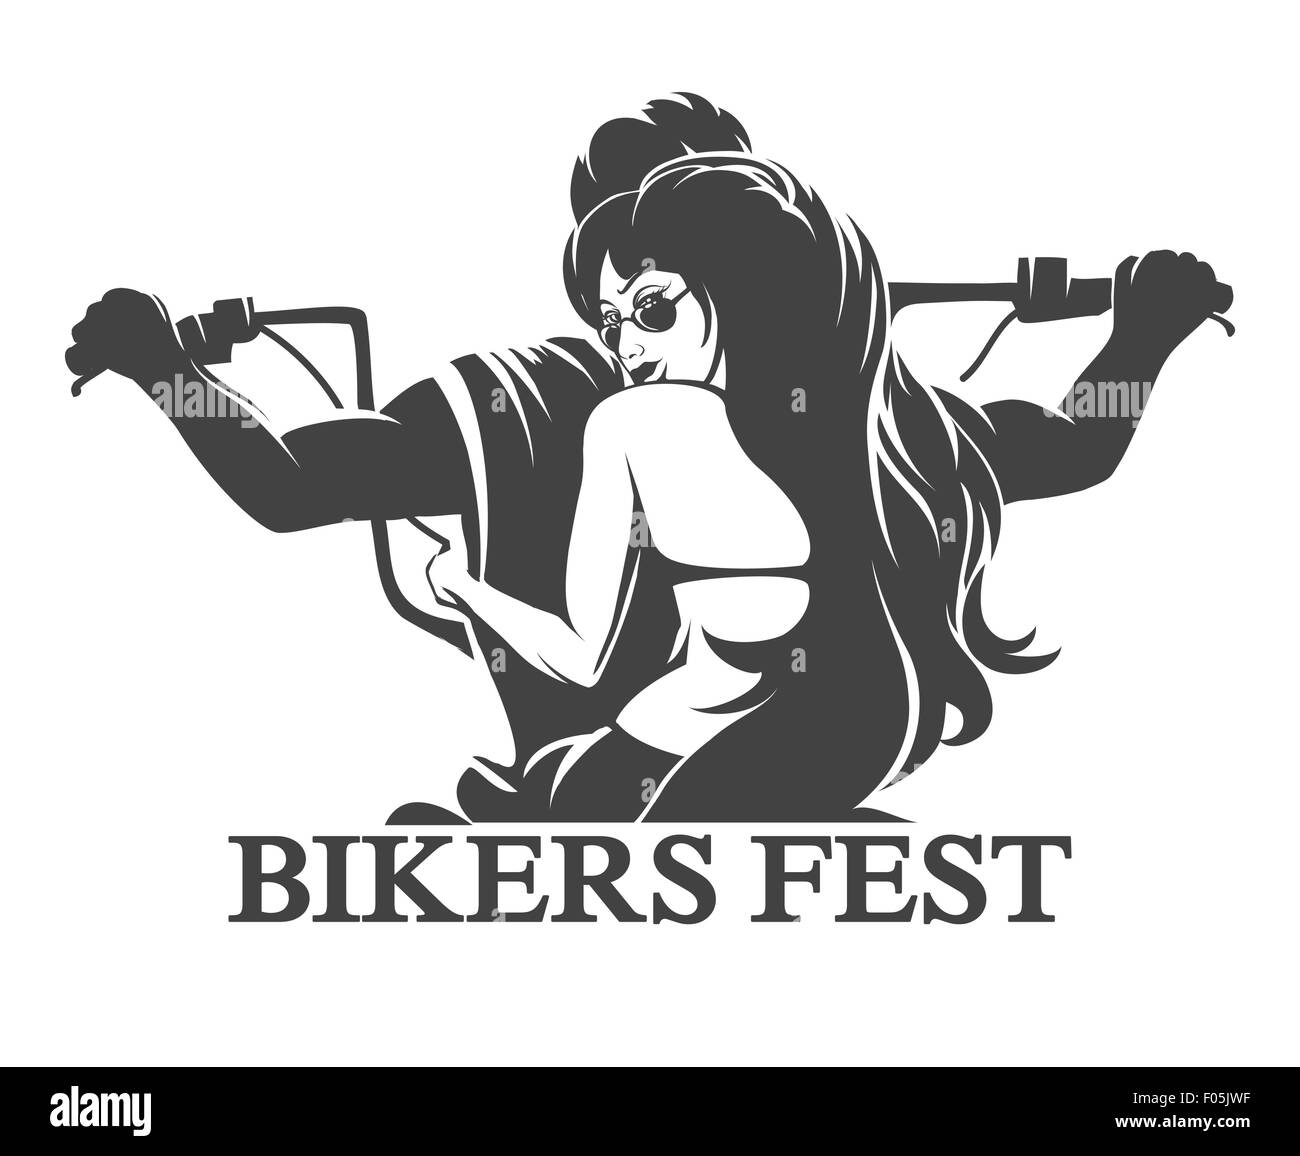 Emblem or label of Bikers Festival. Young Man and woman ride a motorcycle. Only free font used. Isolated on white - Stock Image